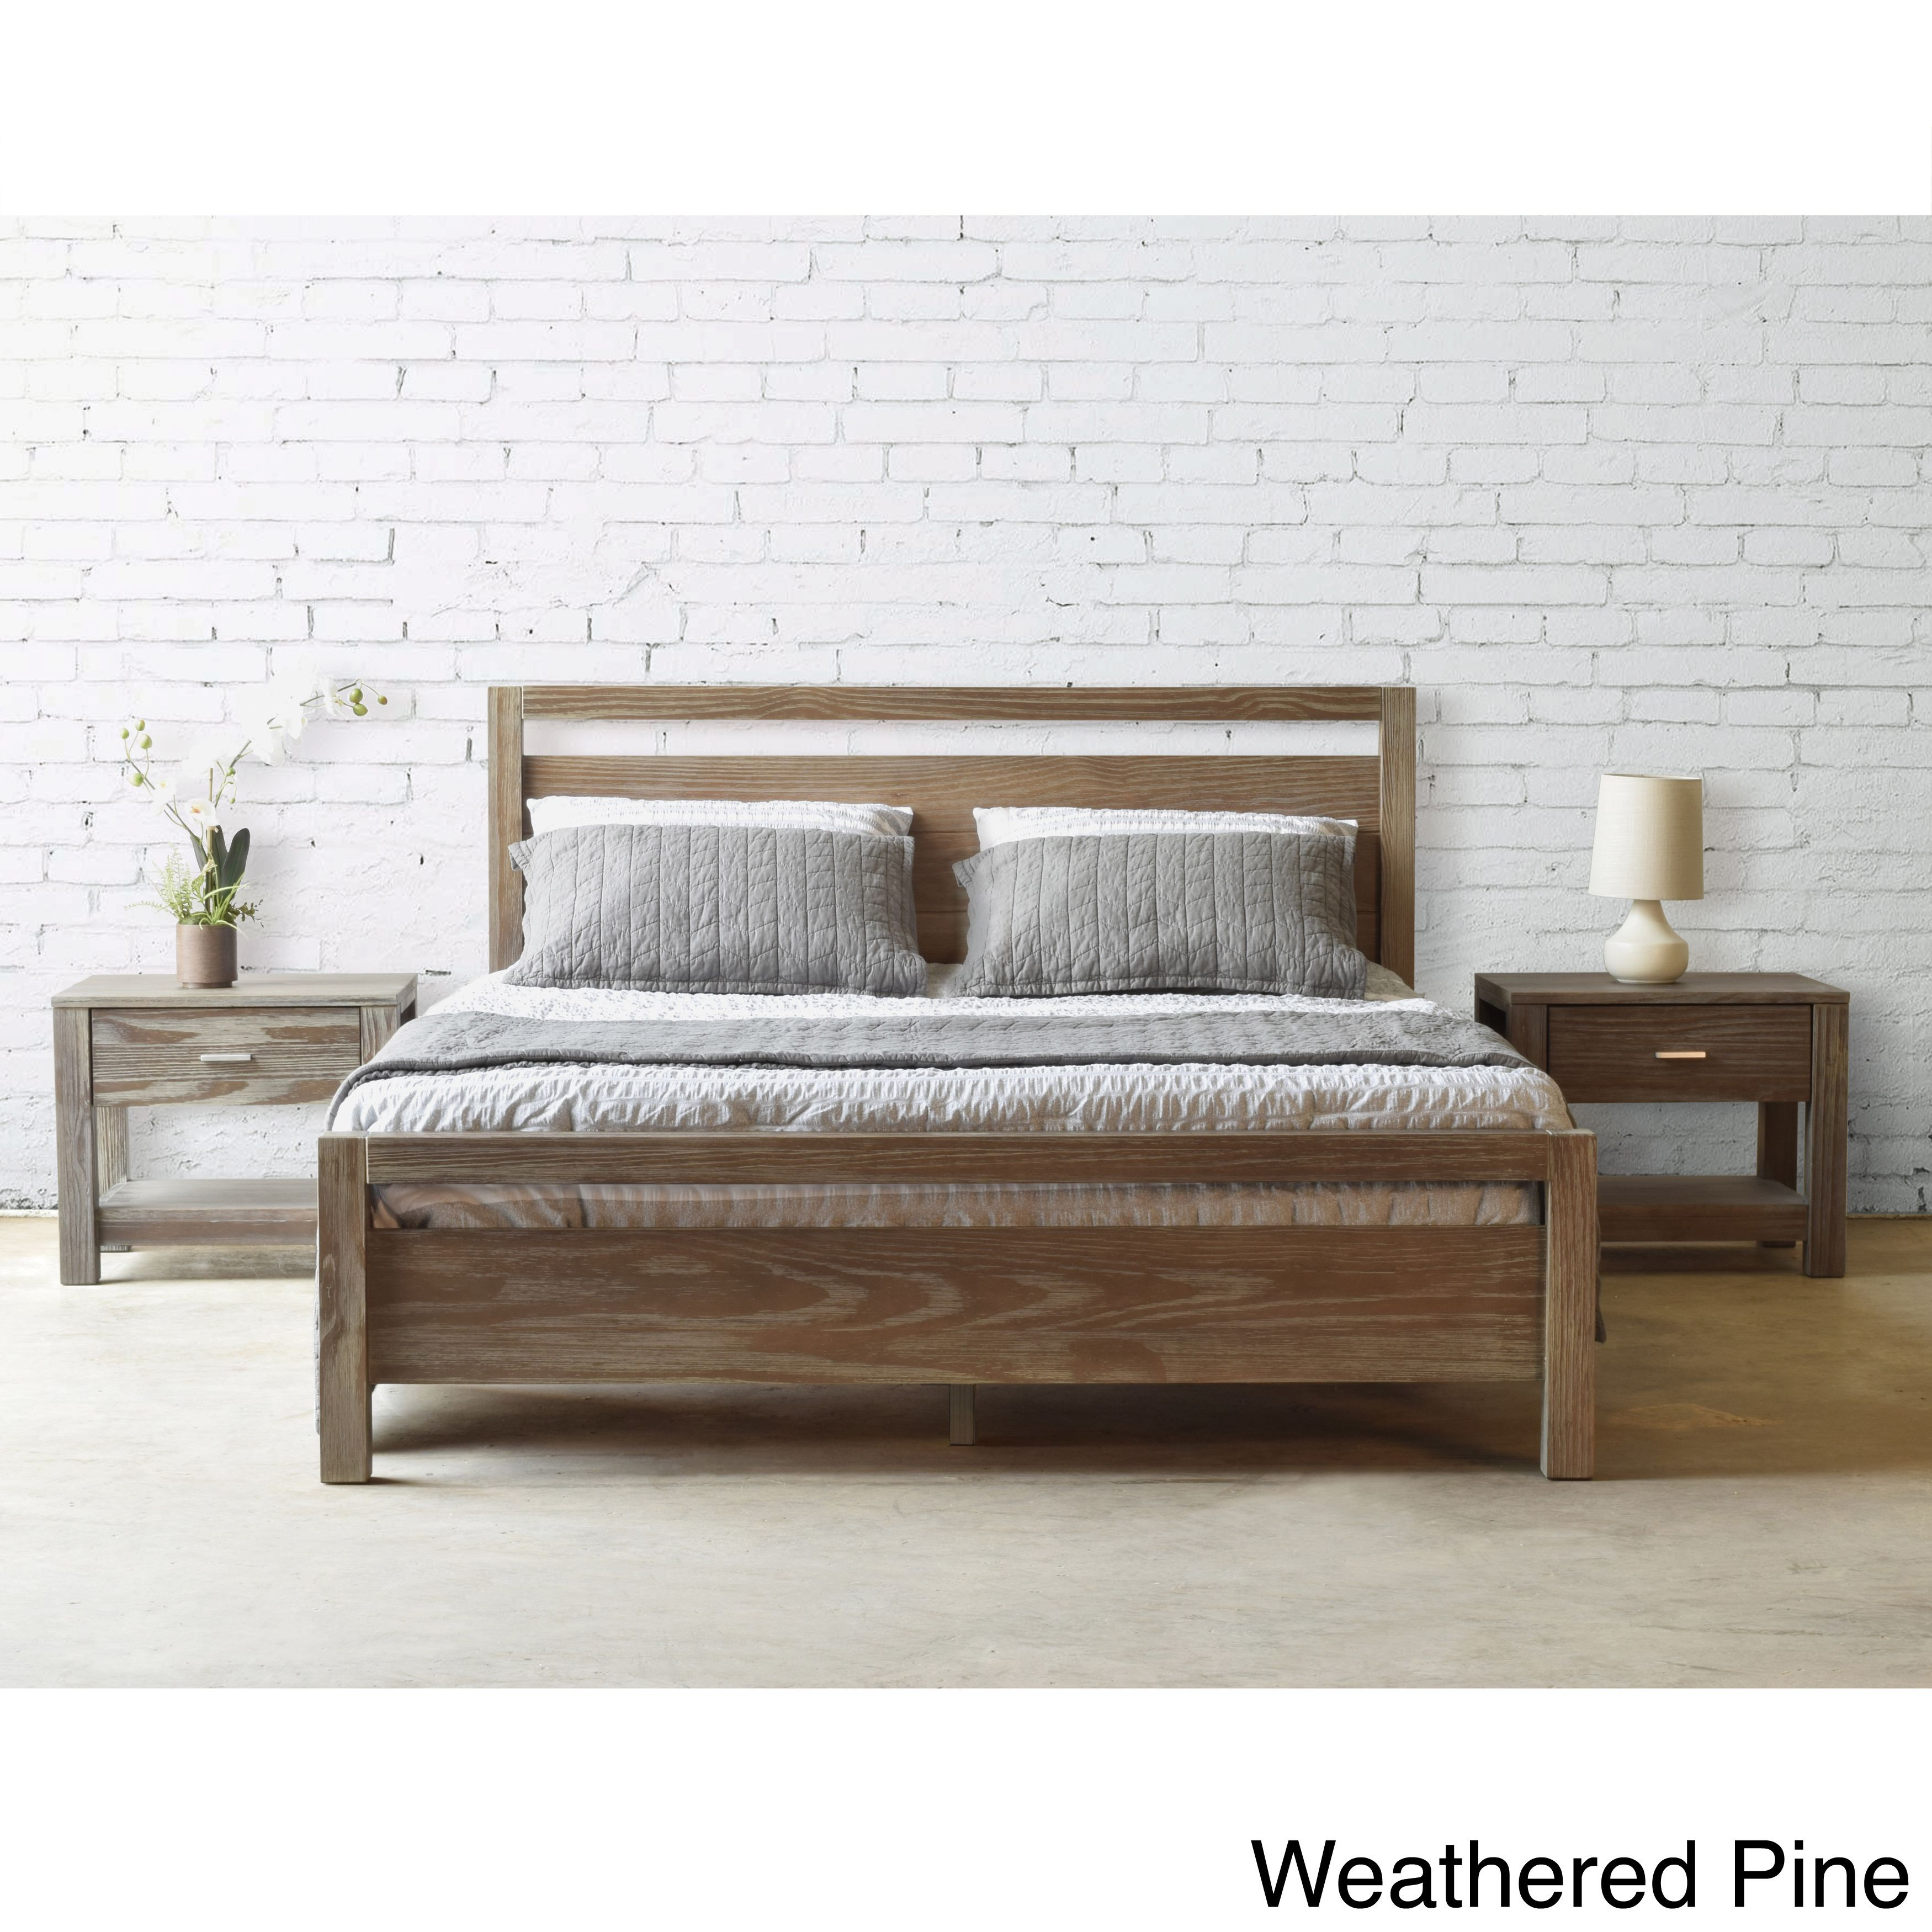 Grain Wood Furniture Loft Solid Queen Size Panel Platform Bed Weathered Pine Brown